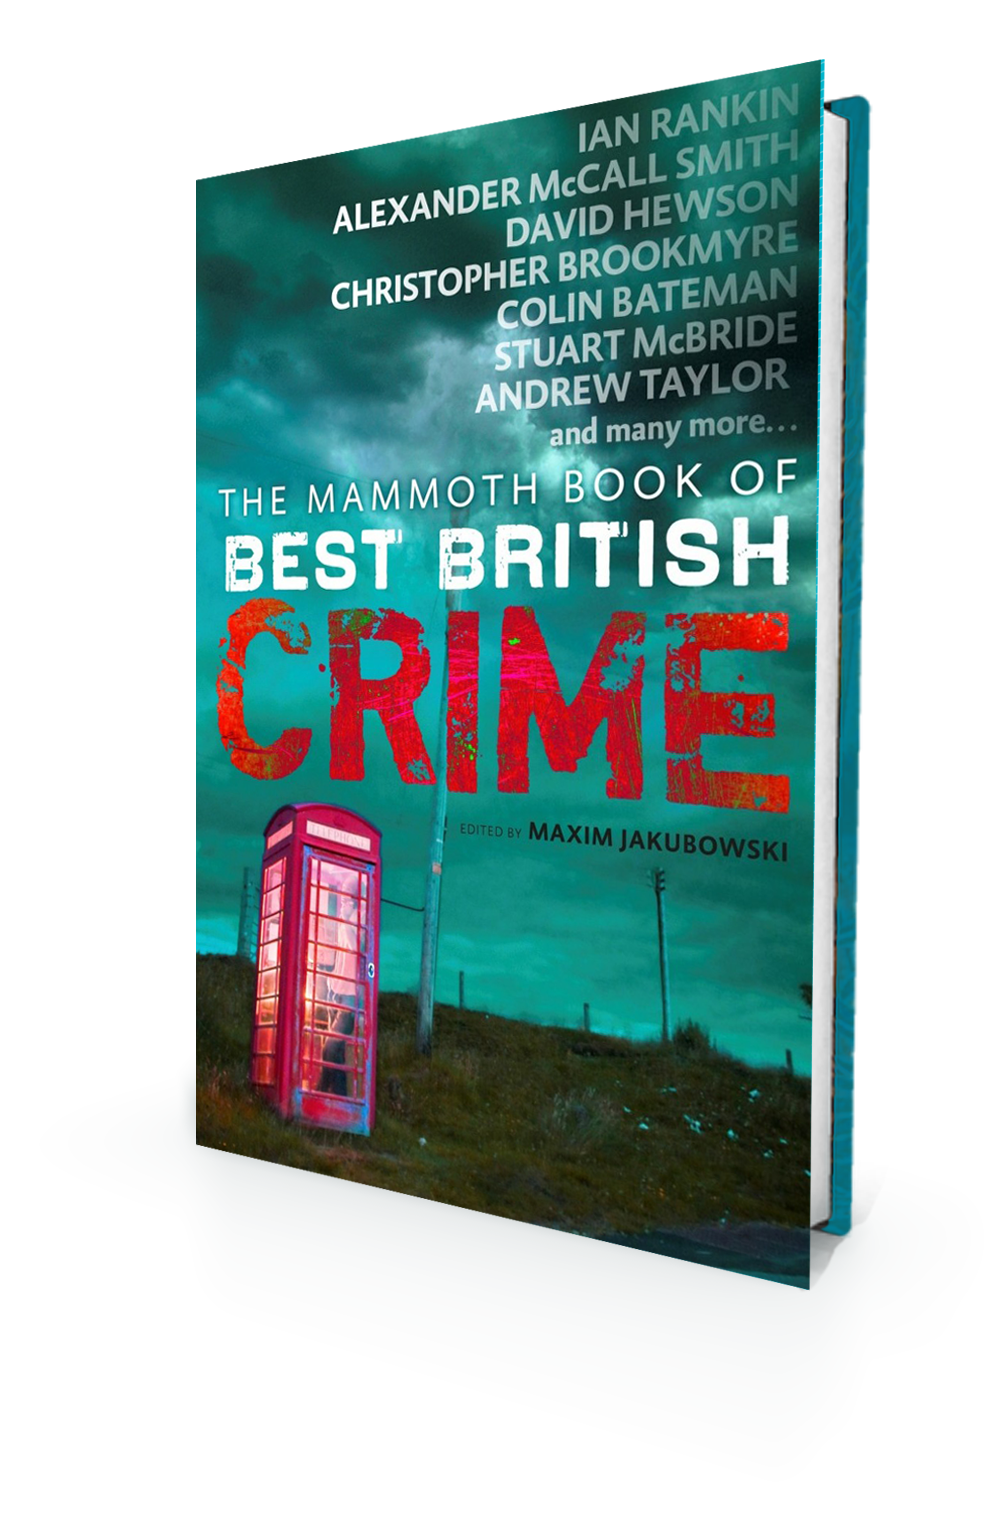 Best British Crime